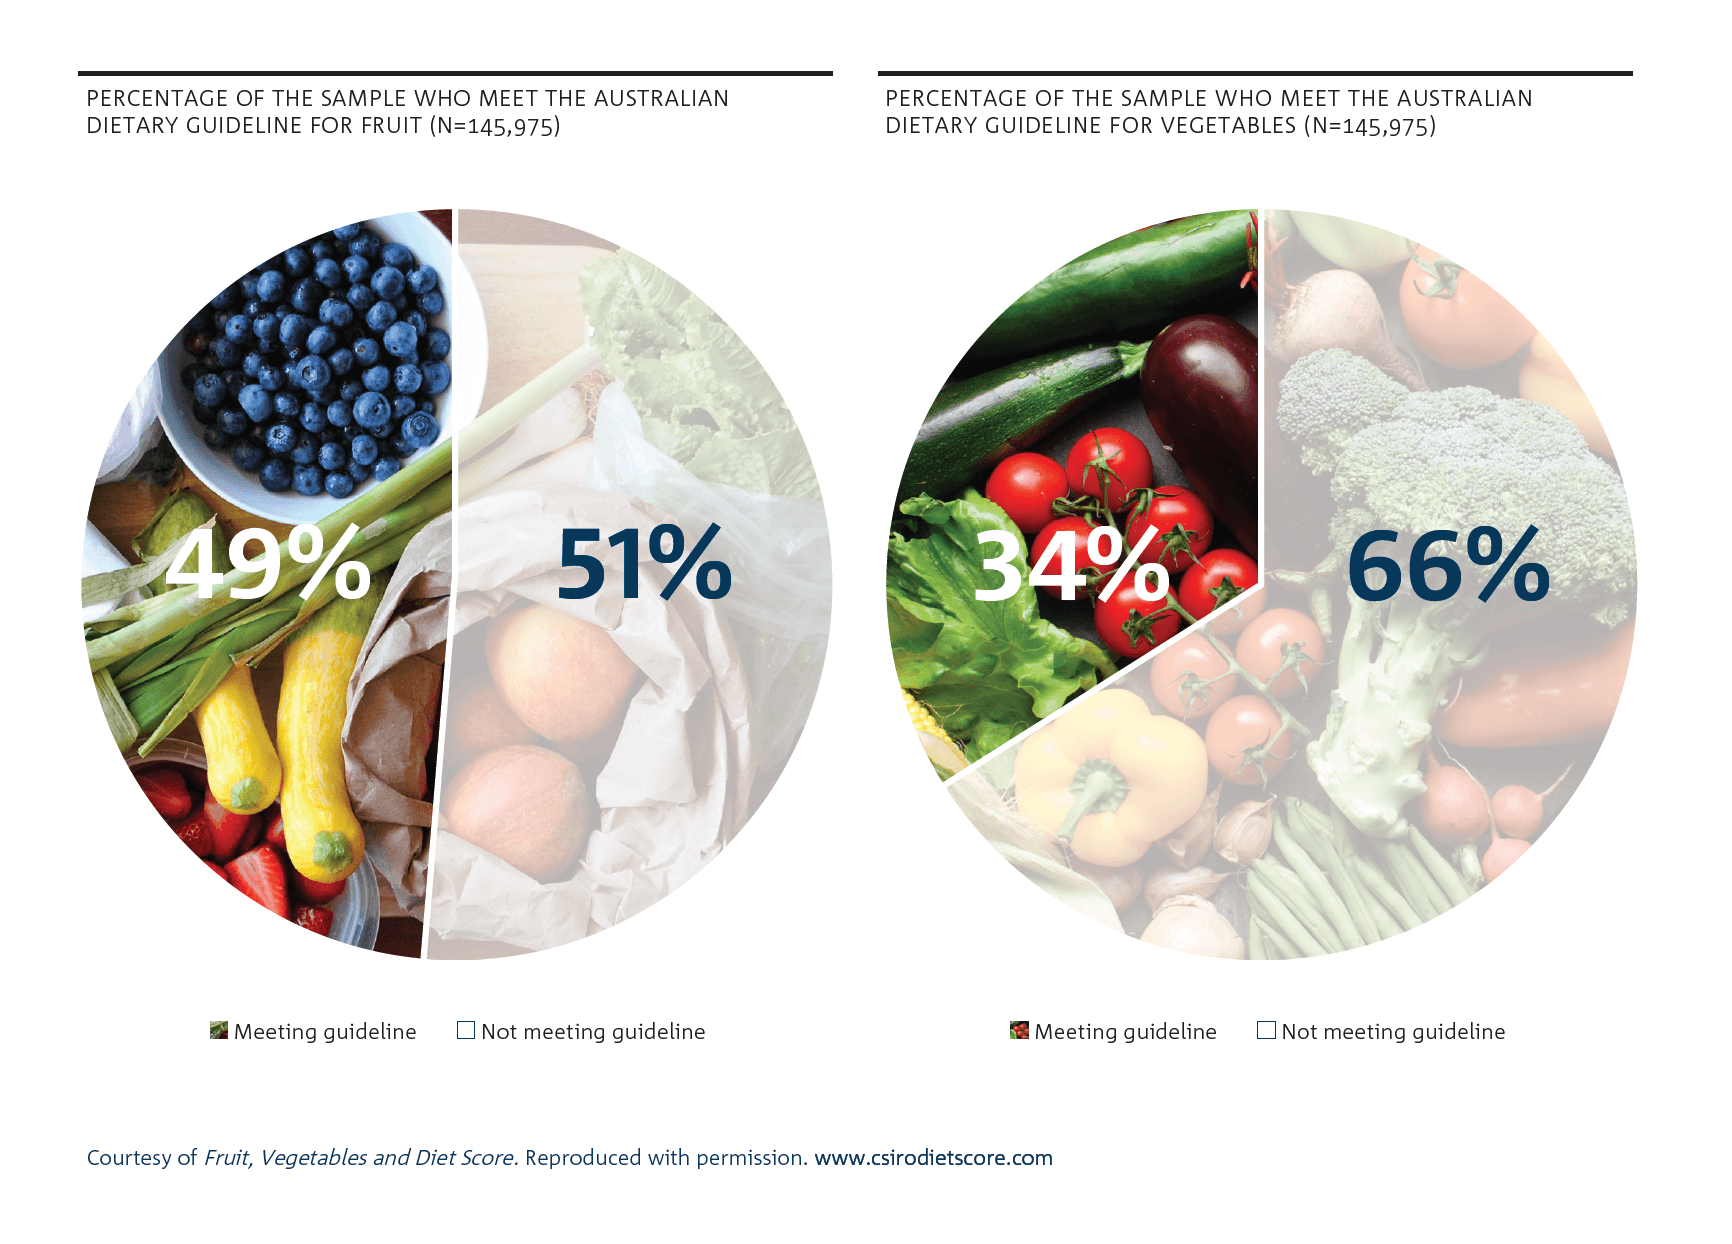 Shaded pie chart showing a breakdown of the percentage of participants who meet the Australian guidelines for fruit (49 per cent met; 51 per cent not met) and vegetables (34 per cent met; 66 per cent not met).